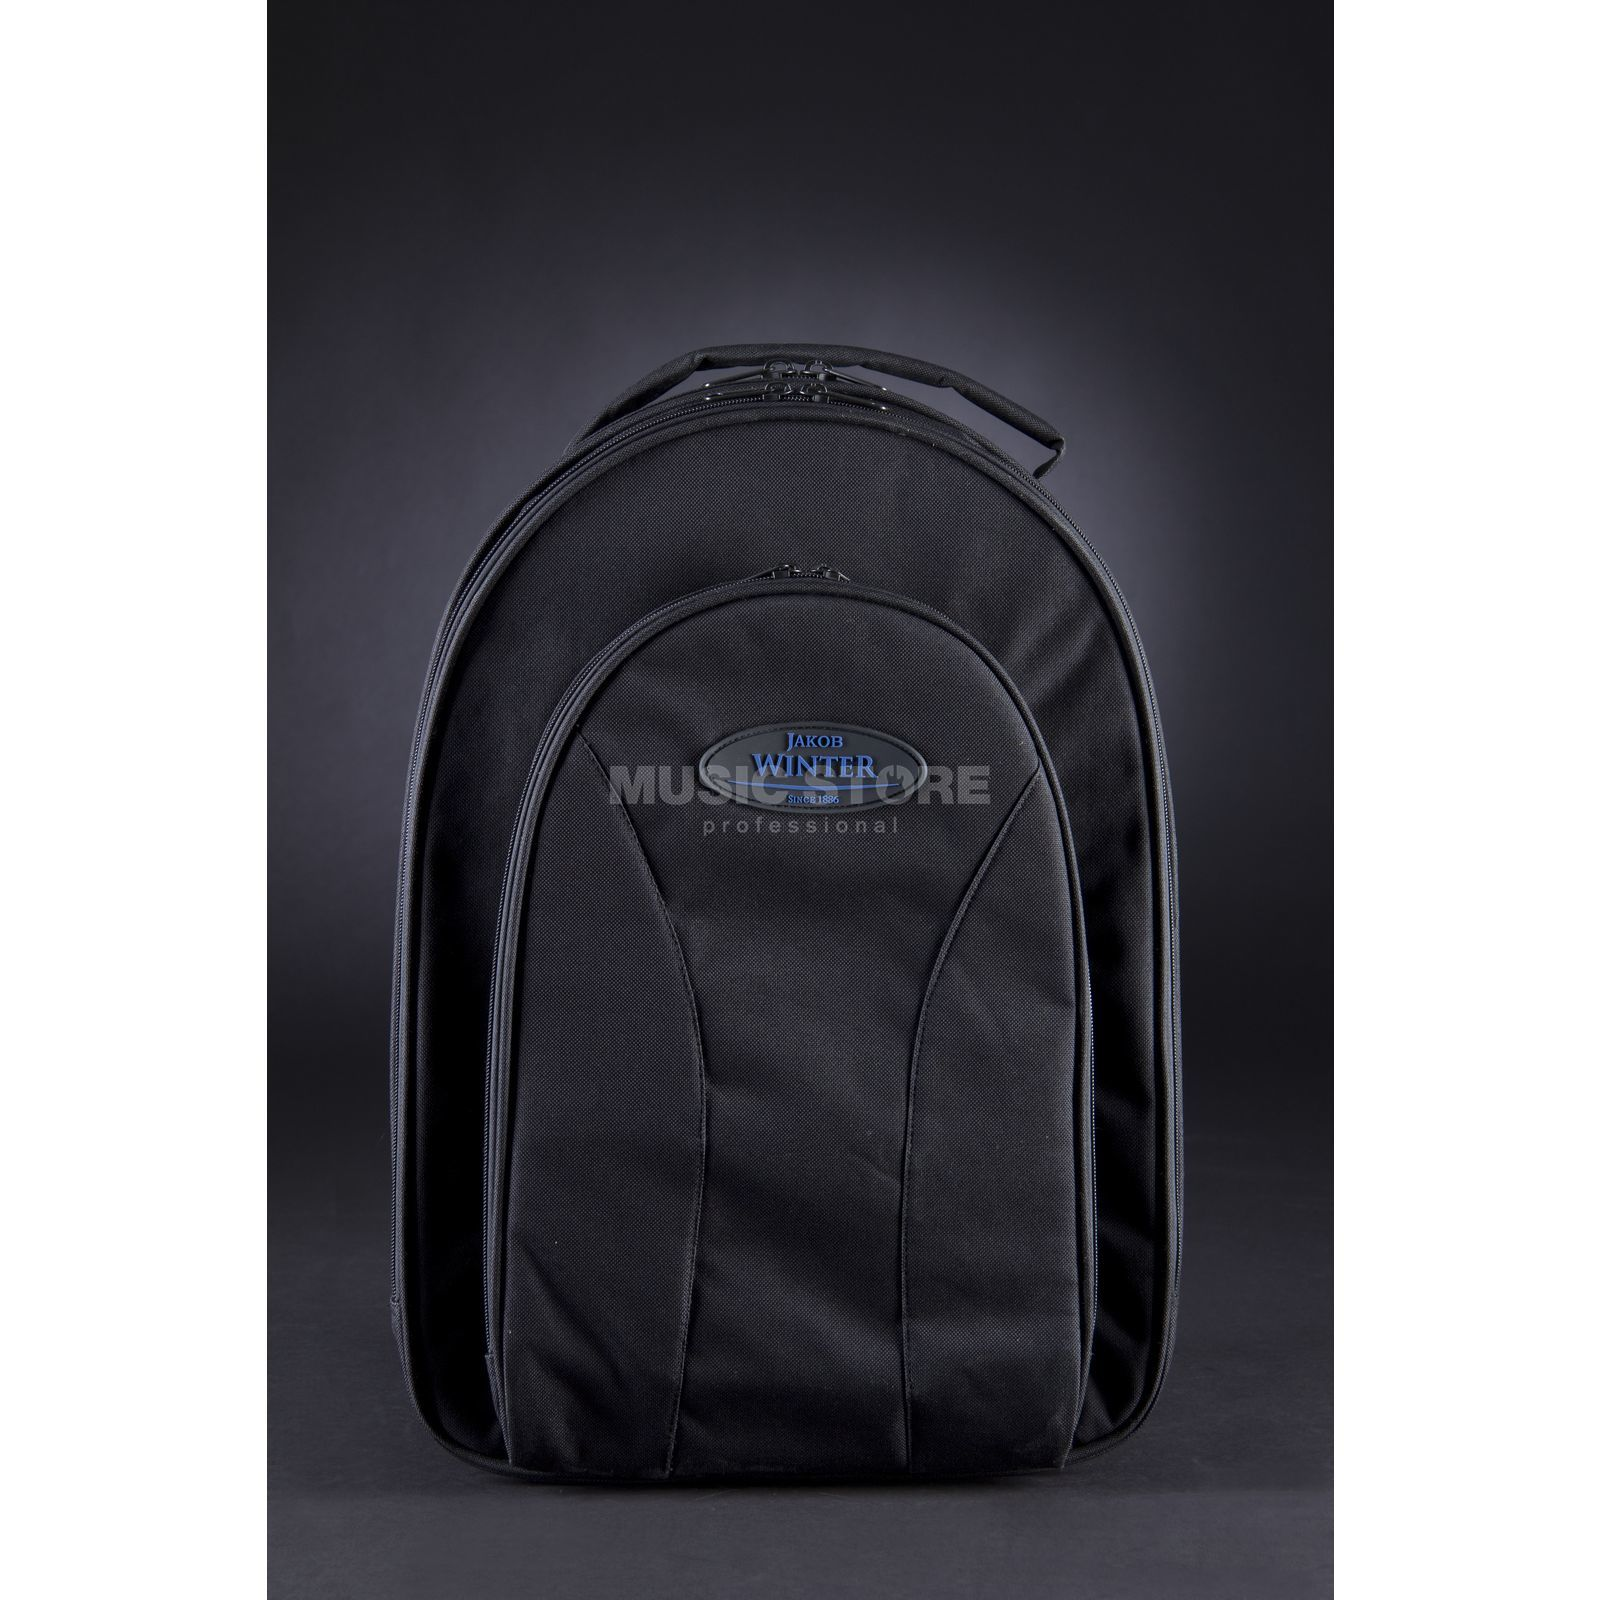 Jakob Winter MP 99821 B Back Pack for Boehm Bb-Clarinet Product Image